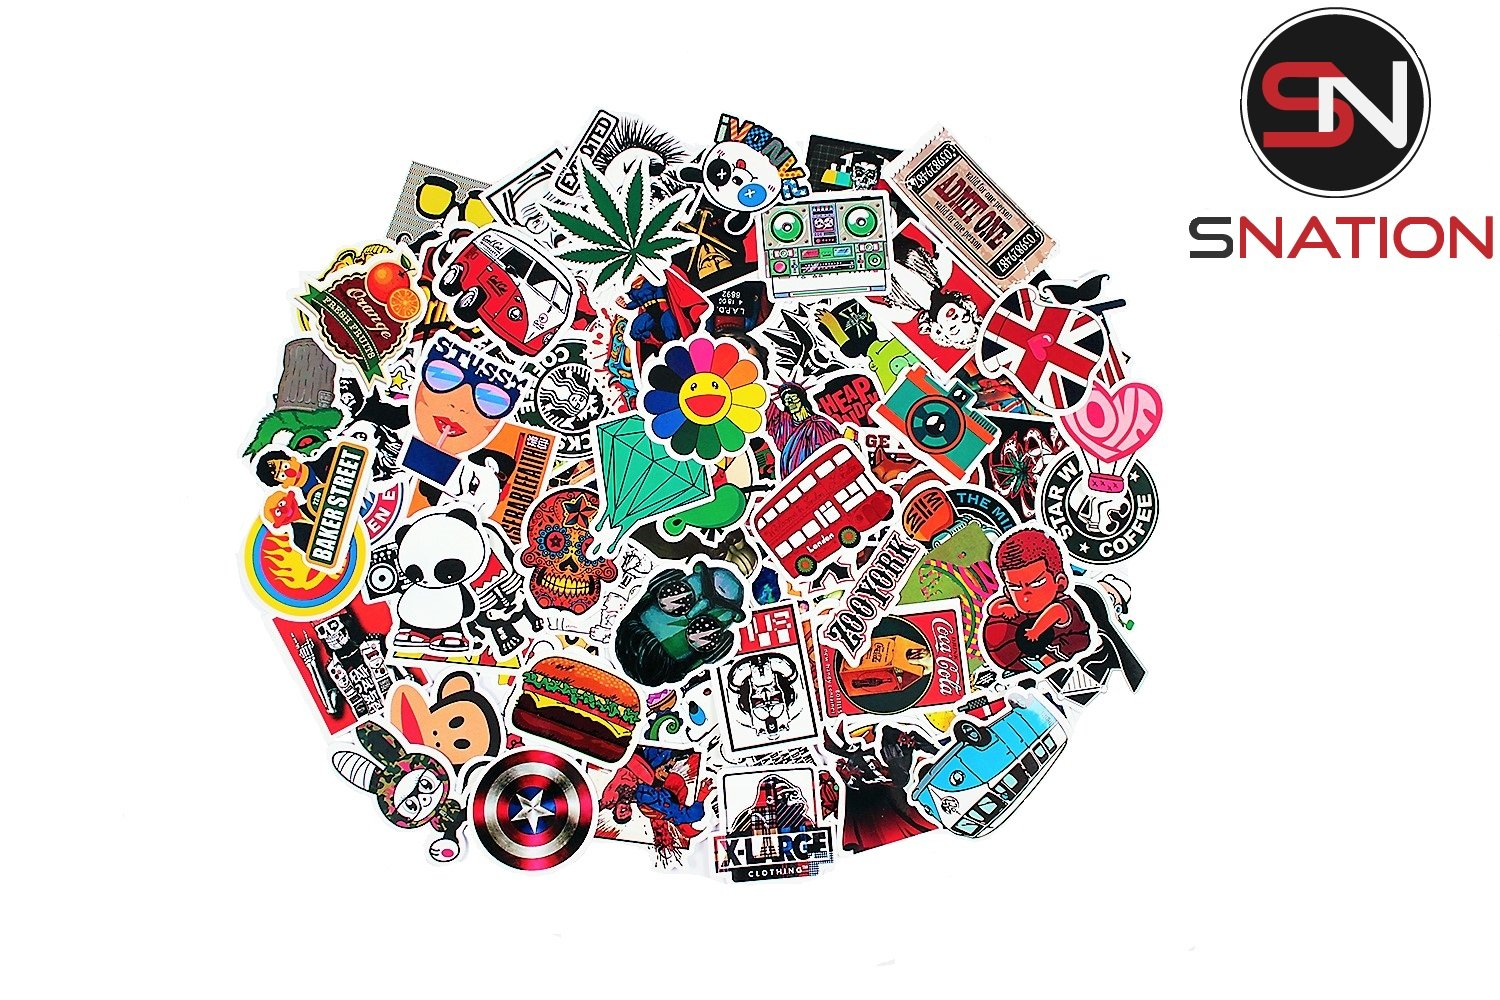 Stickers 100pcs sticker pack snation stickers laptop stickers skateboard stickers stickers laptop stickers bmx stickers stickerbomb2 amazon ca